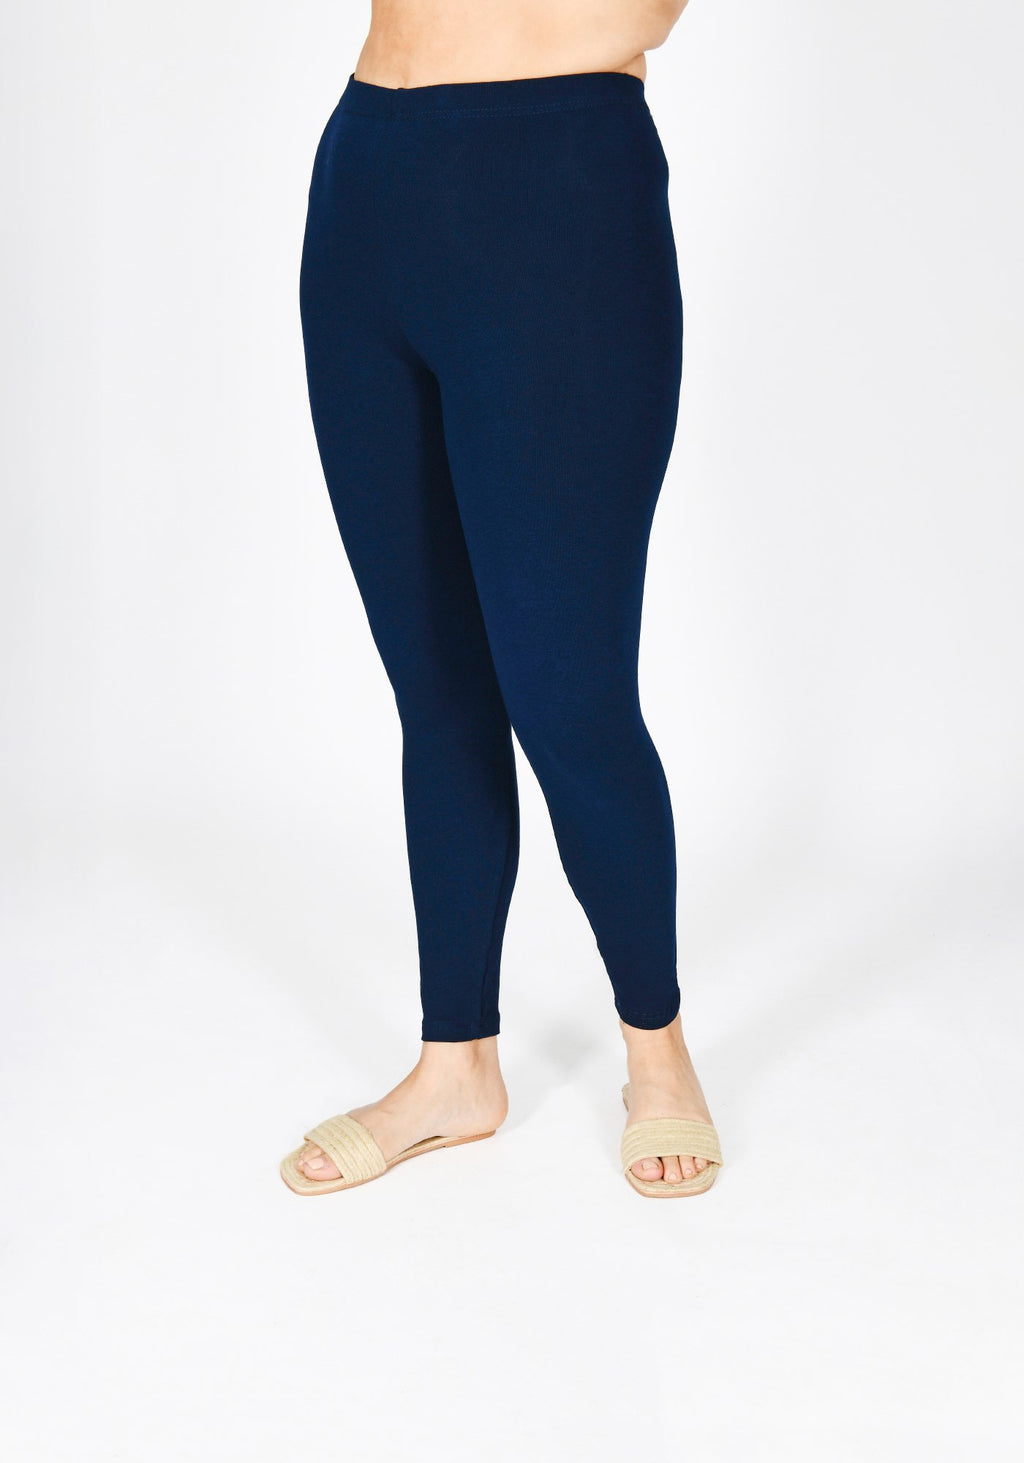 Classic Plus Size Navy Blue Leggings 1